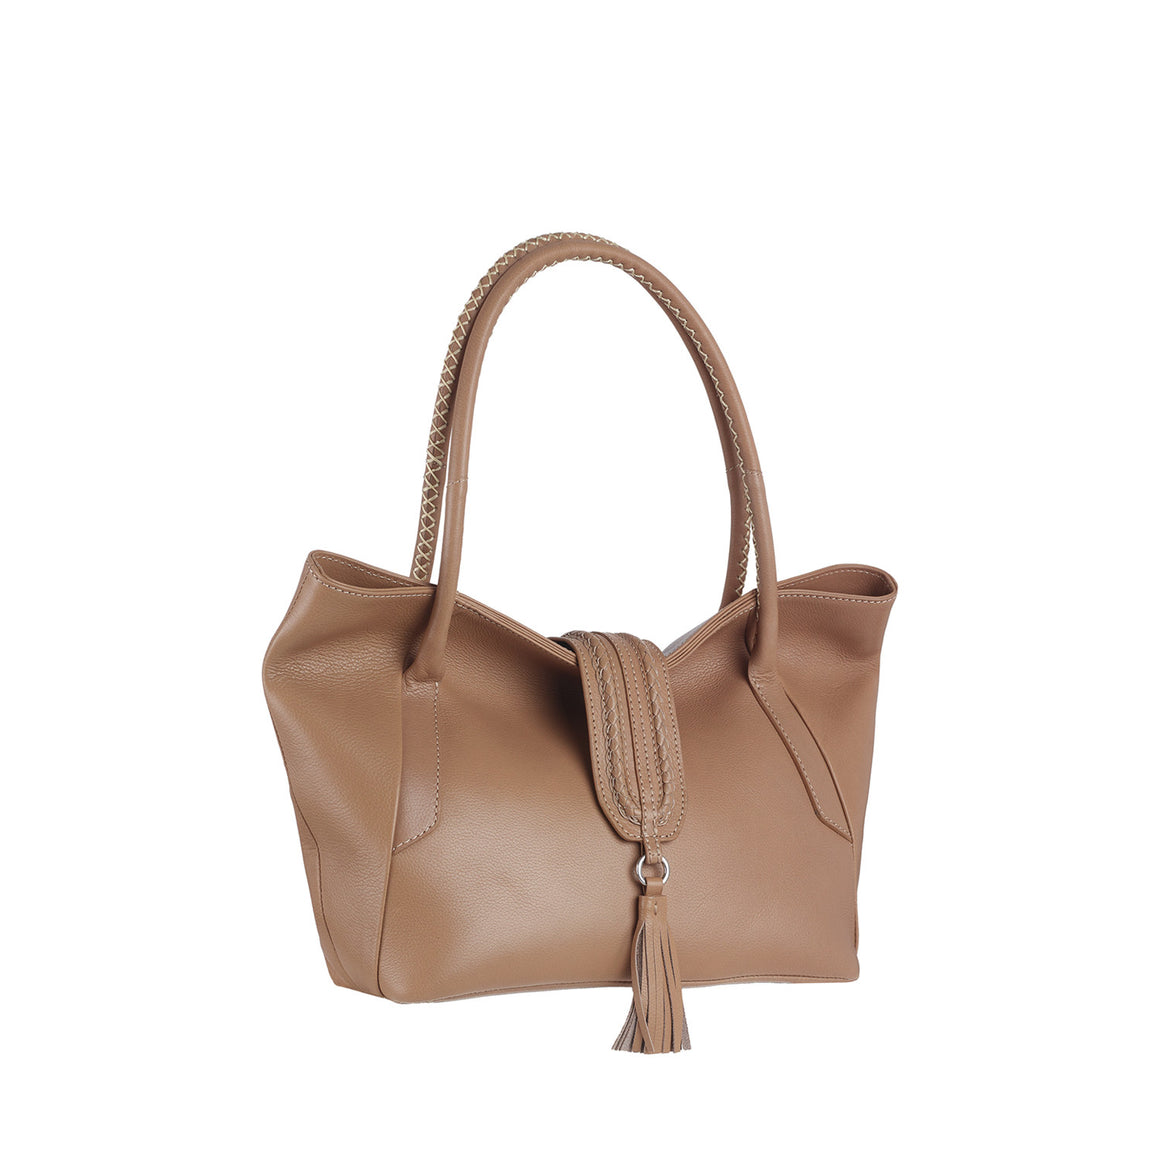 HH 0003 - TOHL ARETHA WOMEN'S SHOULDER BAG - NUDE